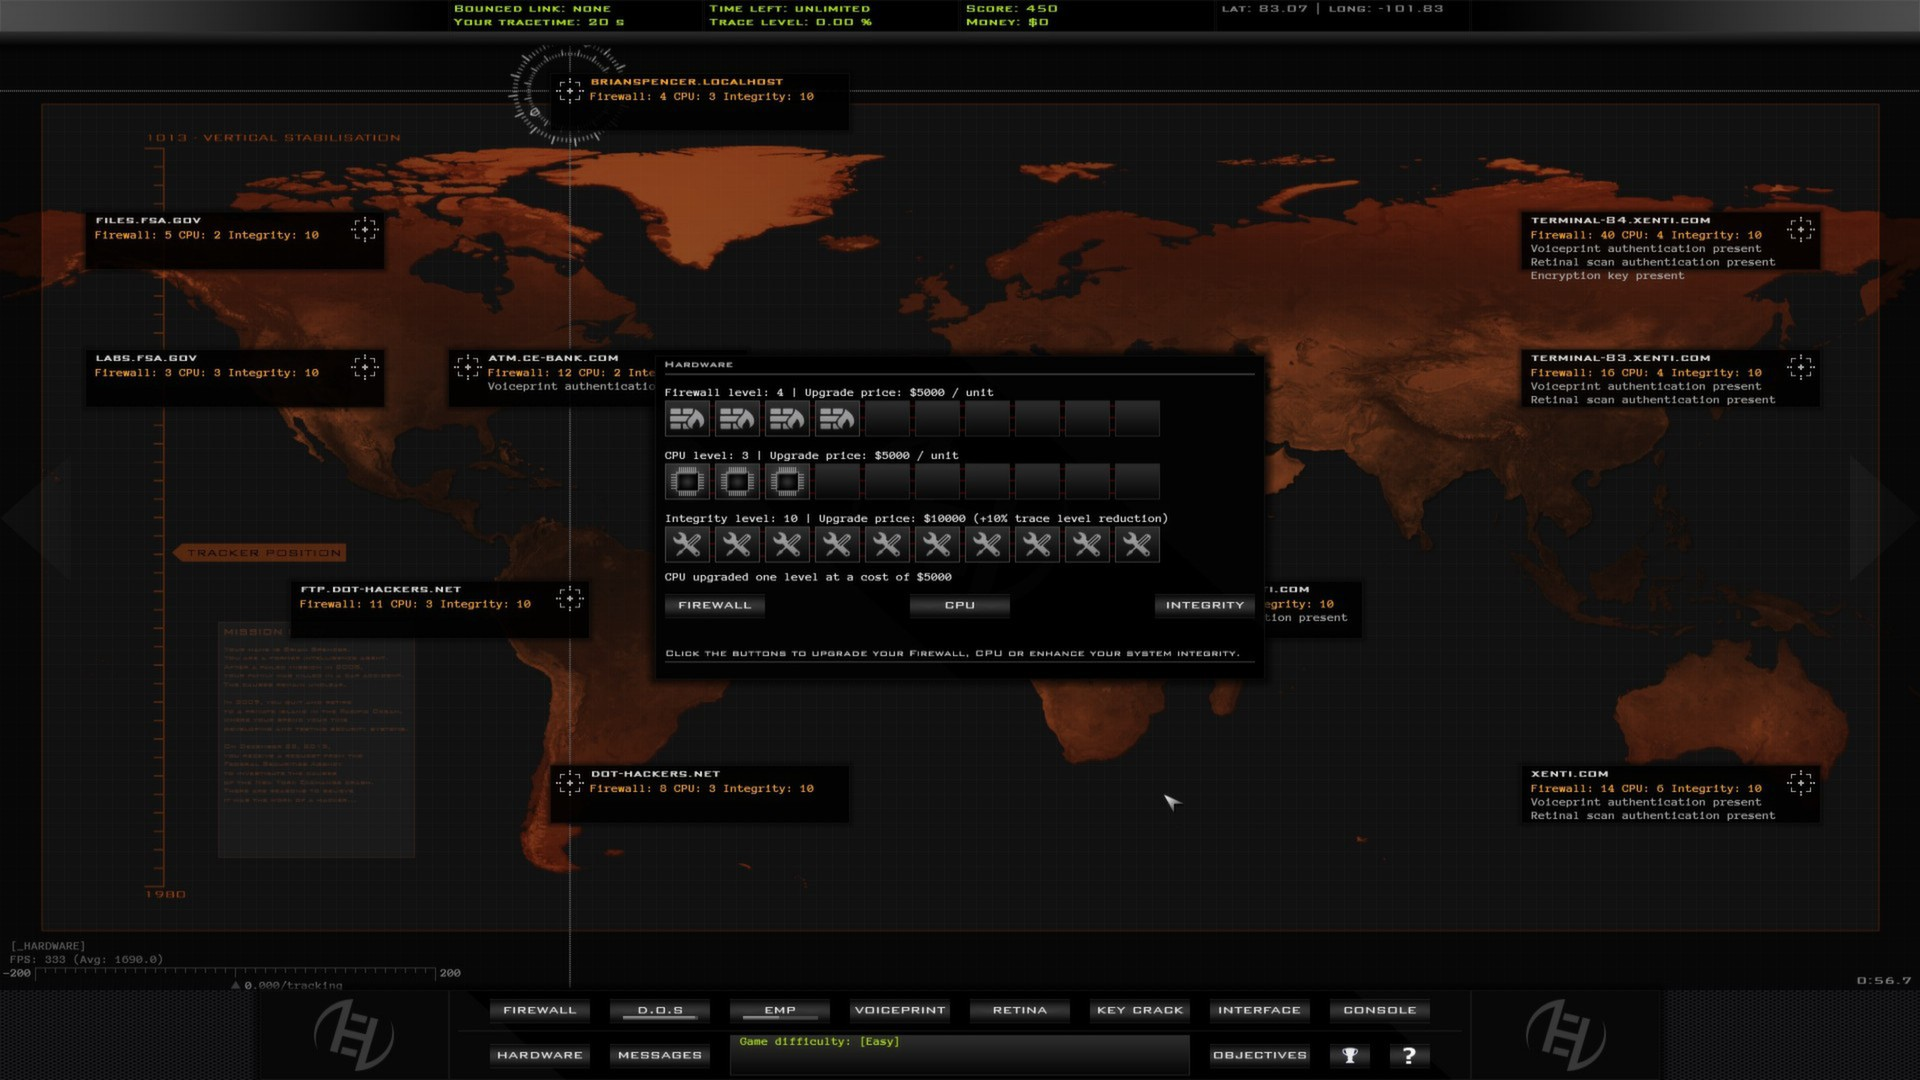 Hacker Evolution: Duality - Inception Part 1 2012 pc game Img-2